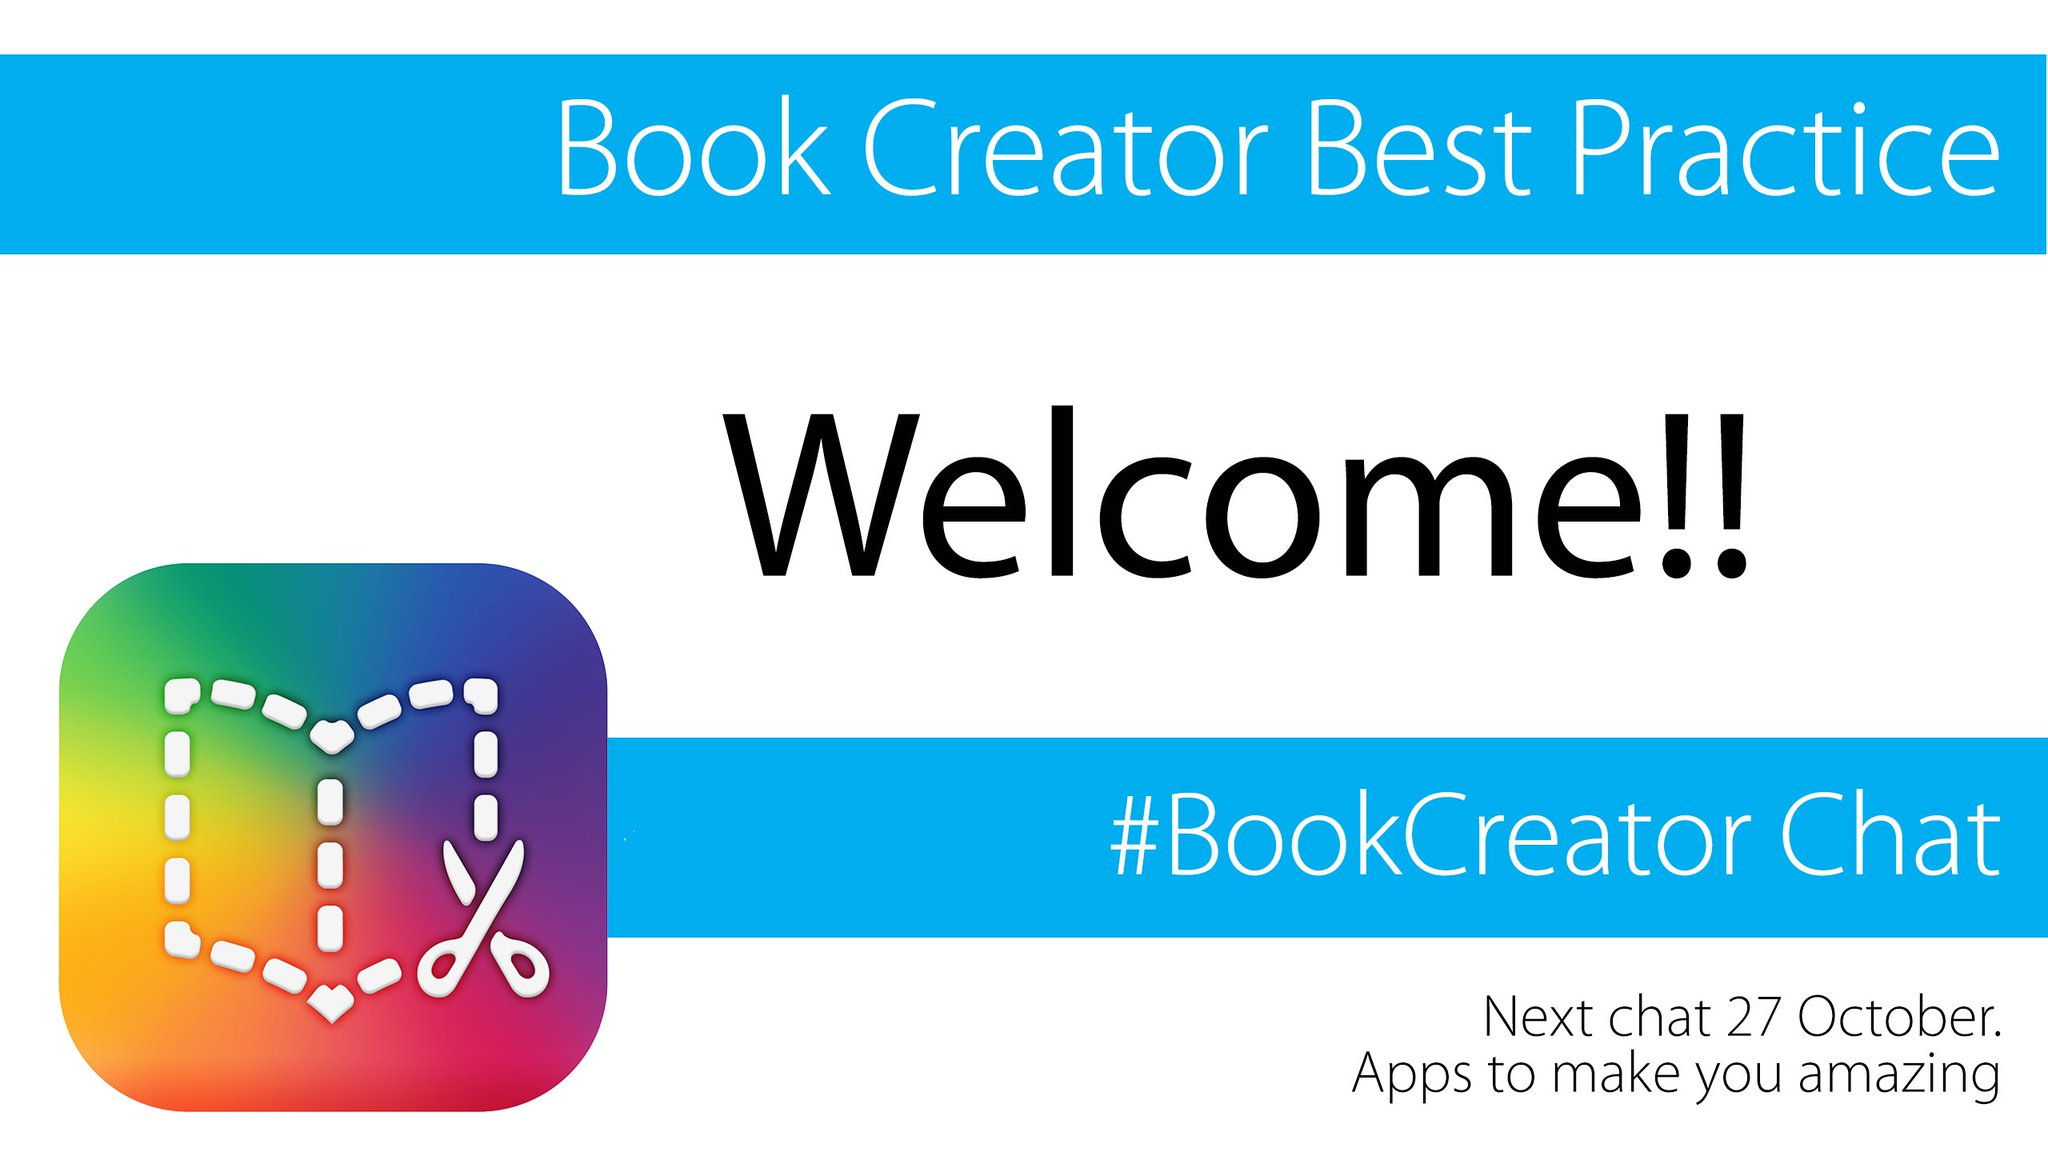 Thumbnail for #BookCreator chat: Best Practice (13 Oct 2016) - UK